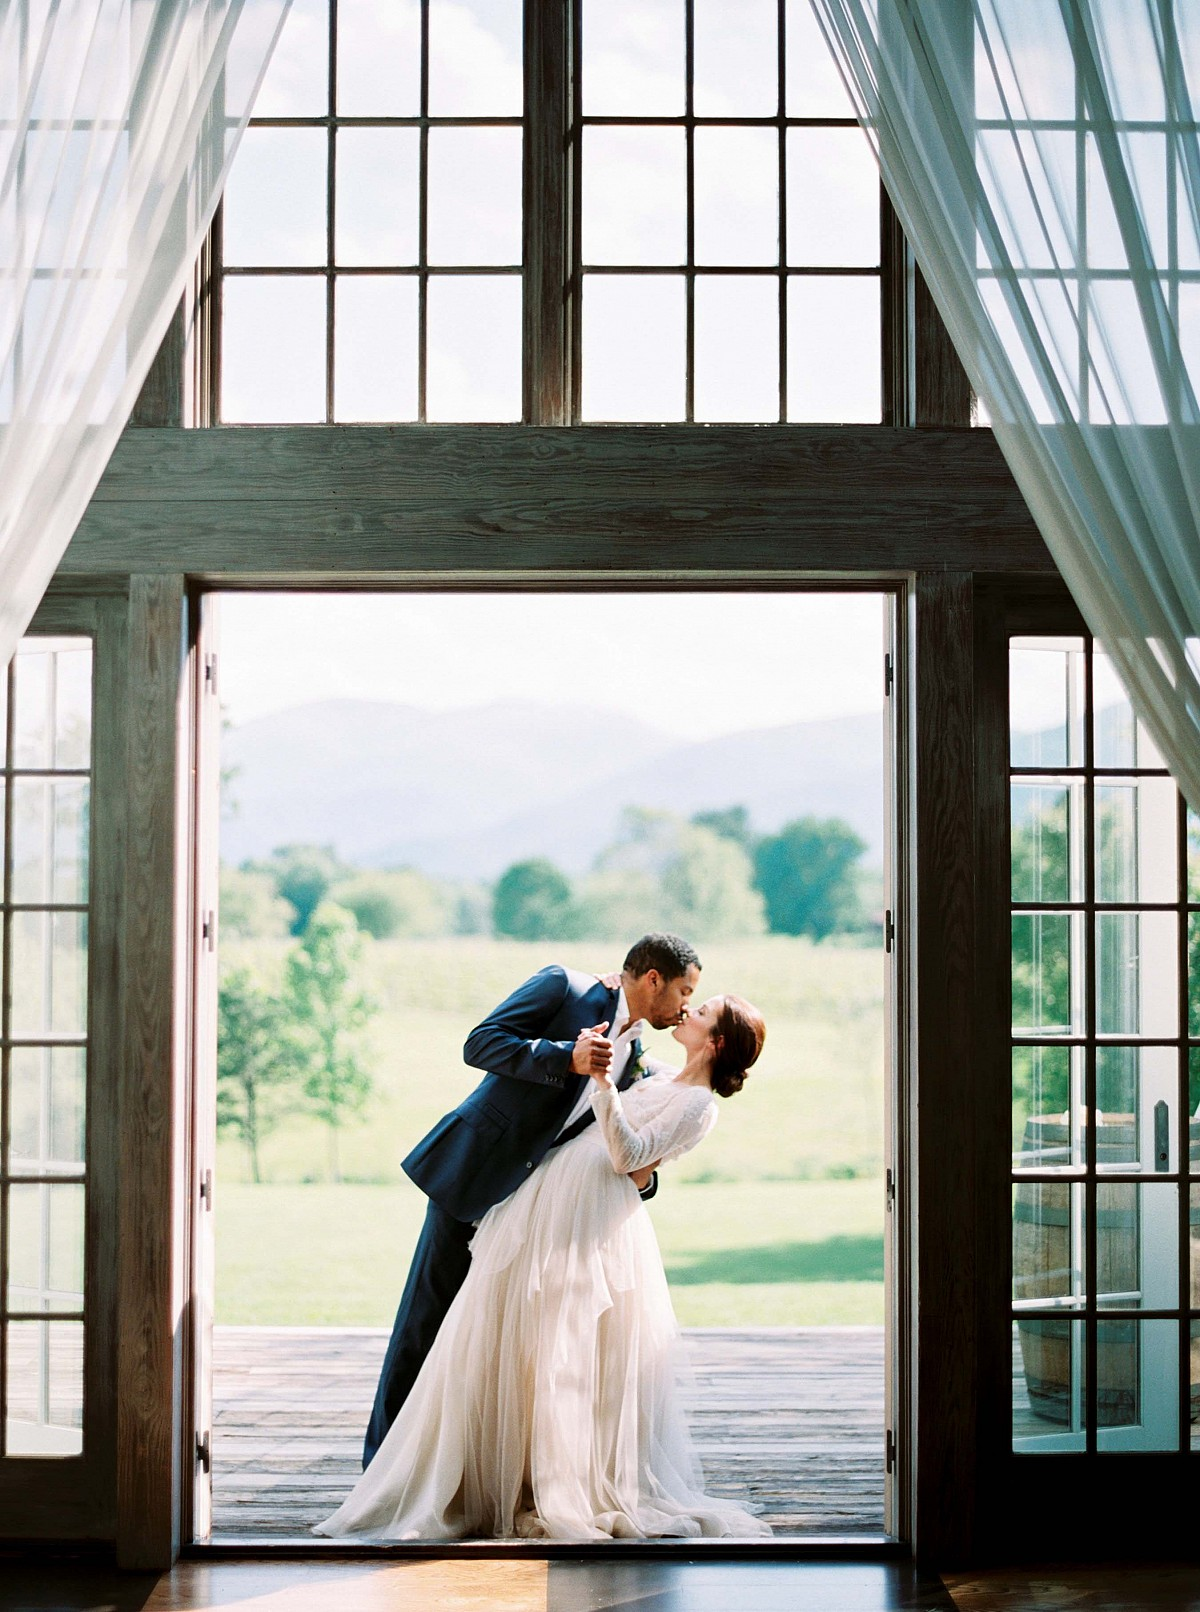 Classically Elegant Wedding Ideas